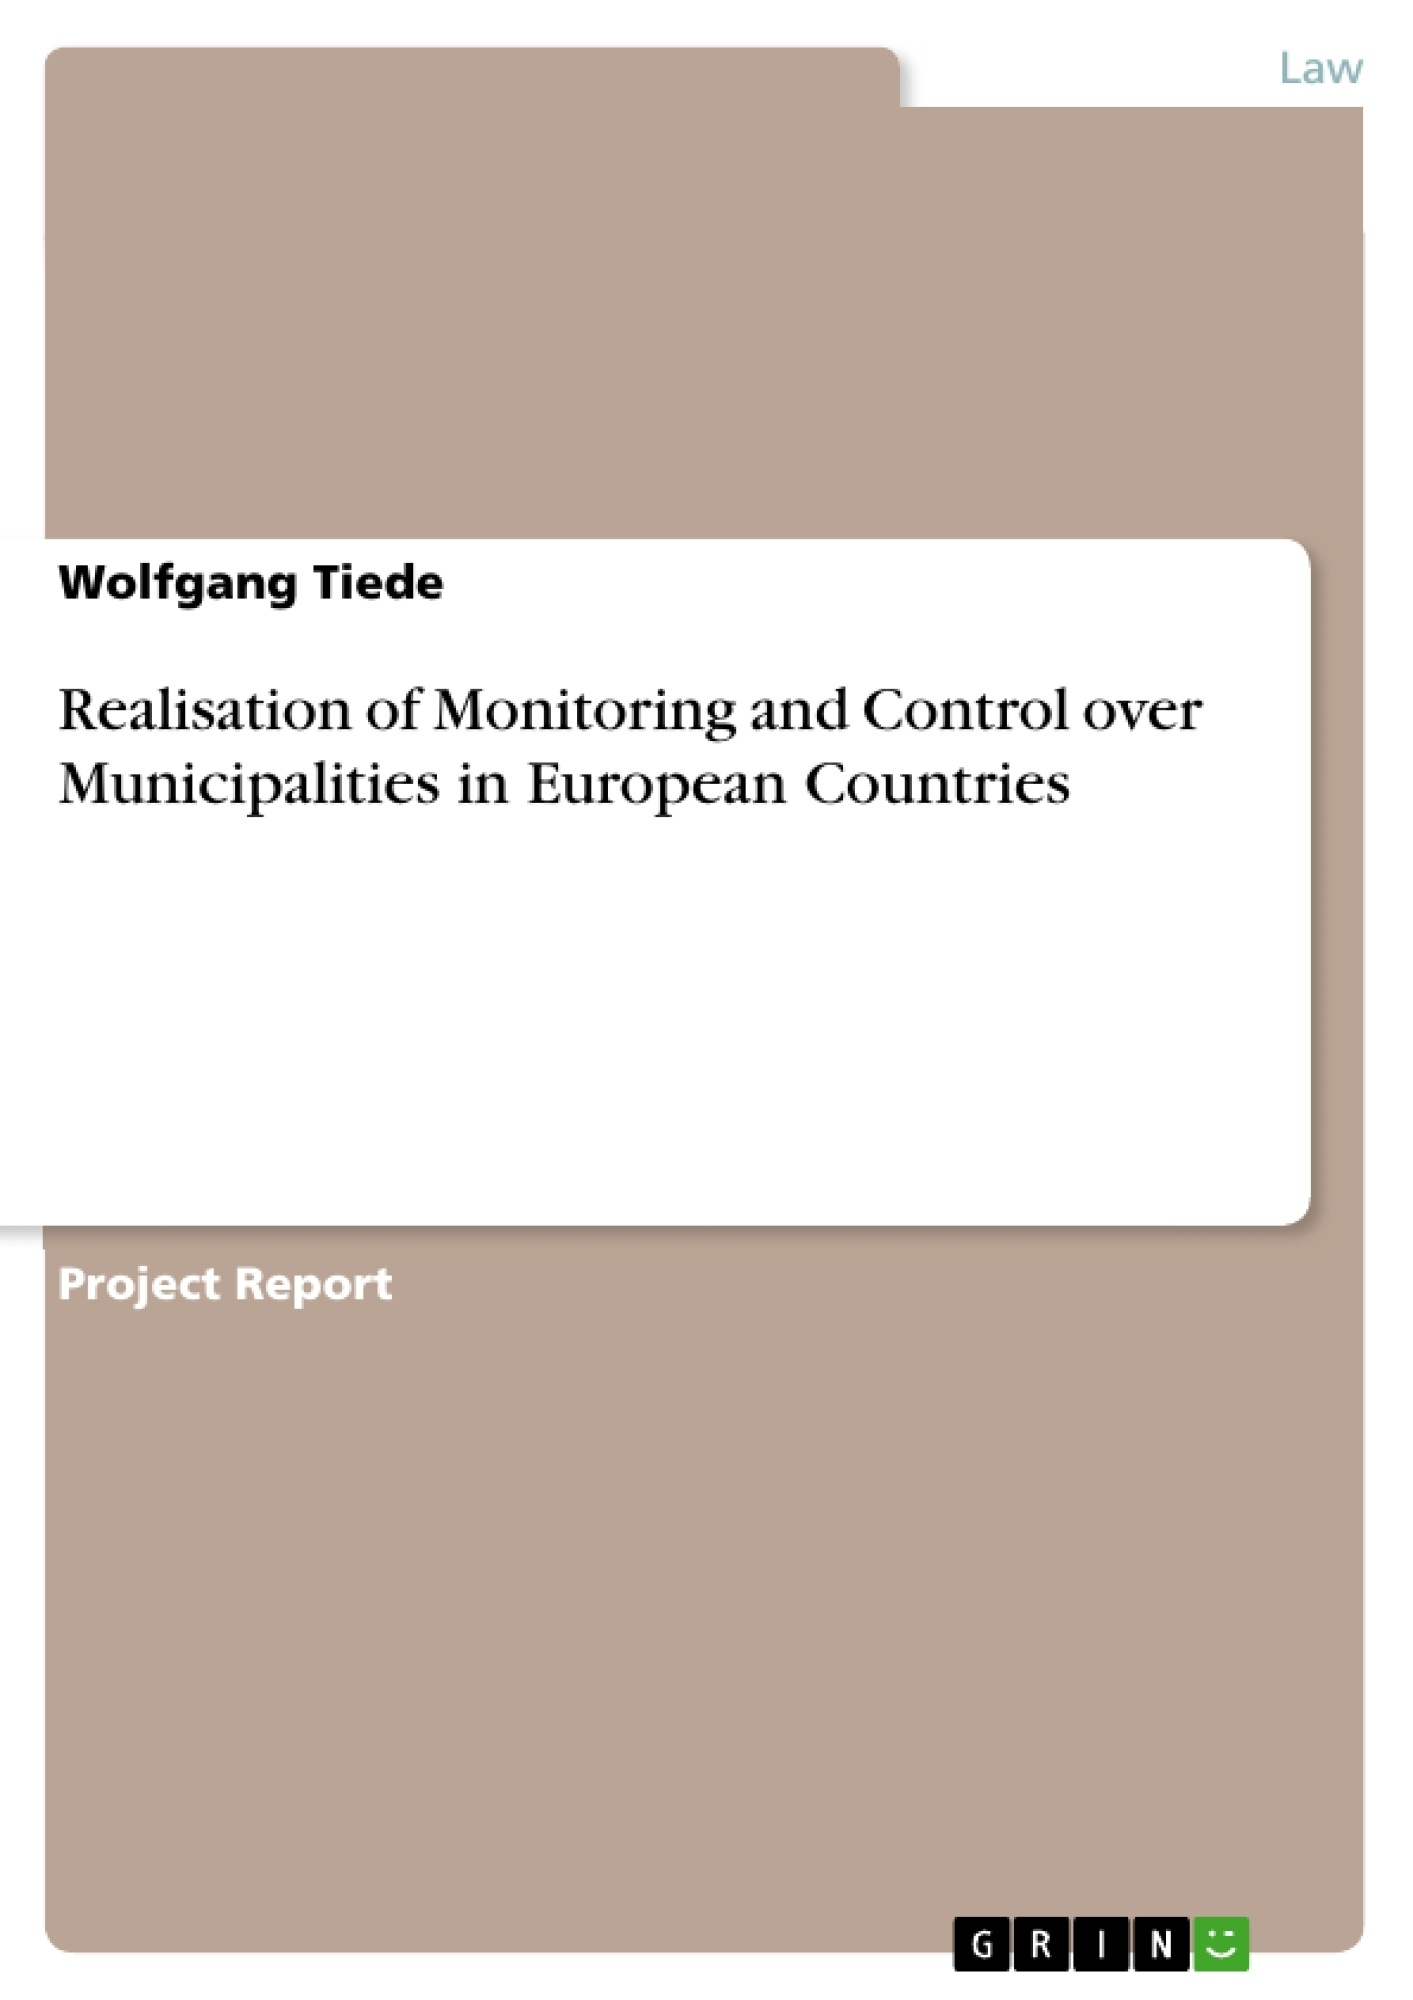 Title: Realisation of Monitoring and Control over Municipalities in European Countries